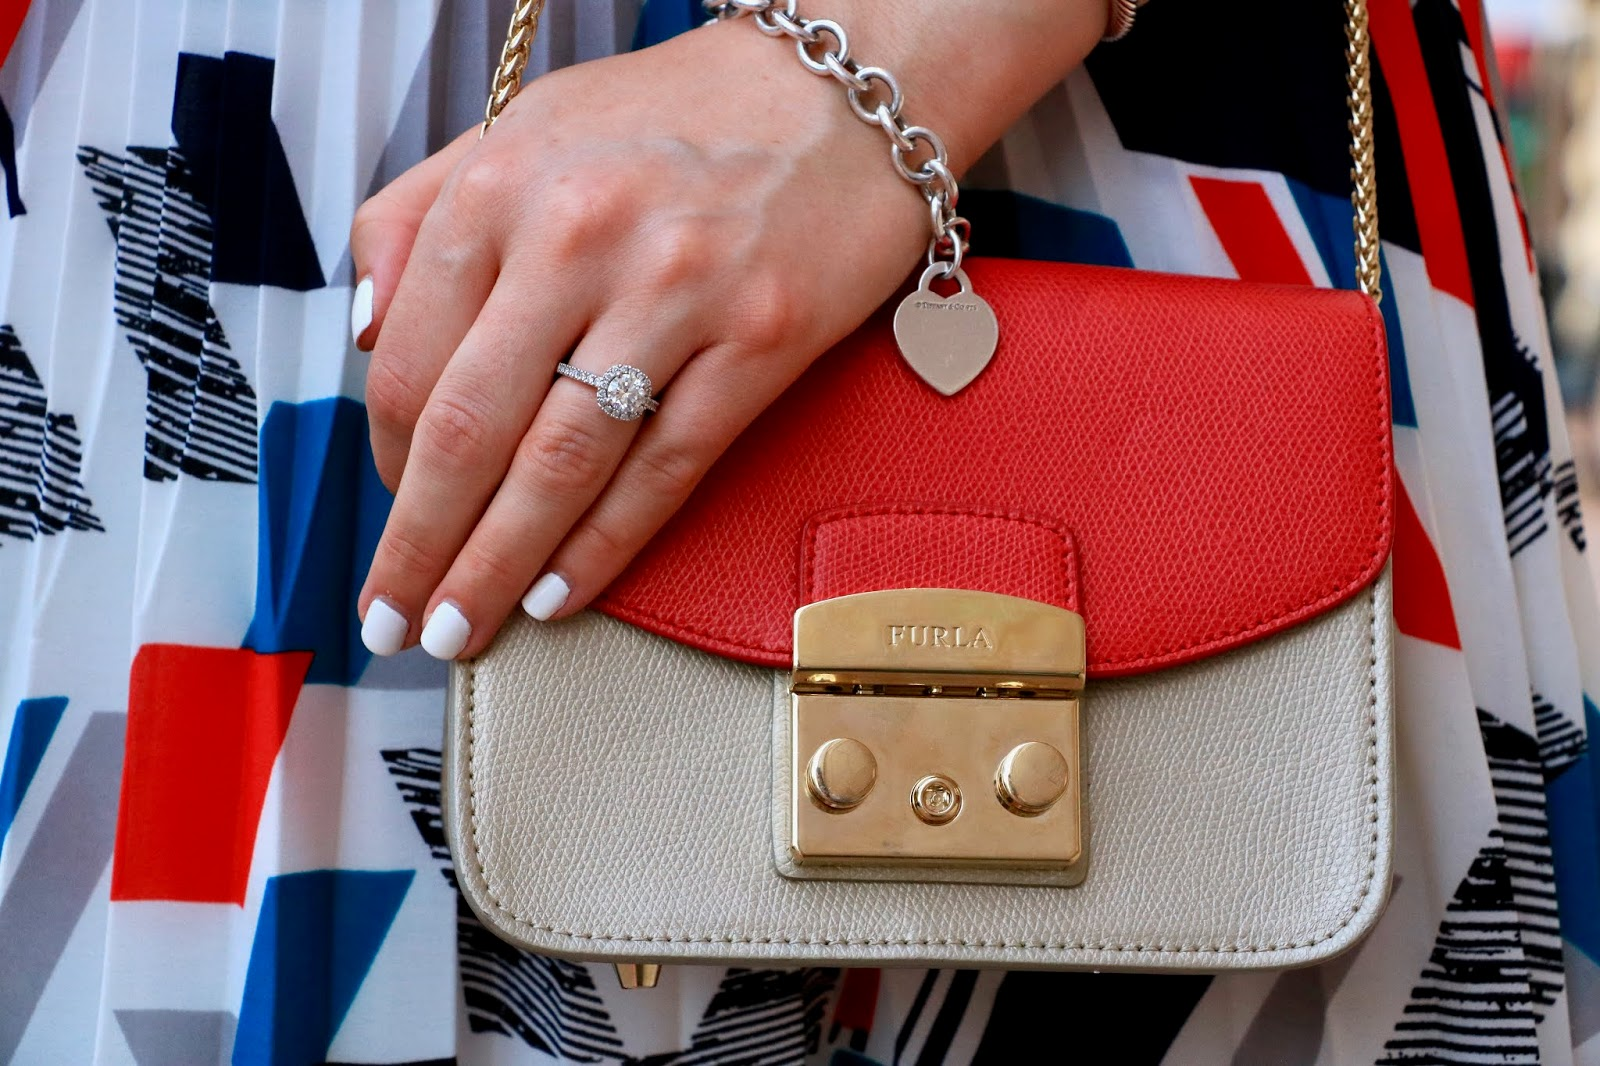 Nyc fashion blogger Kathleen Harper wearing a red Furla mini bag.